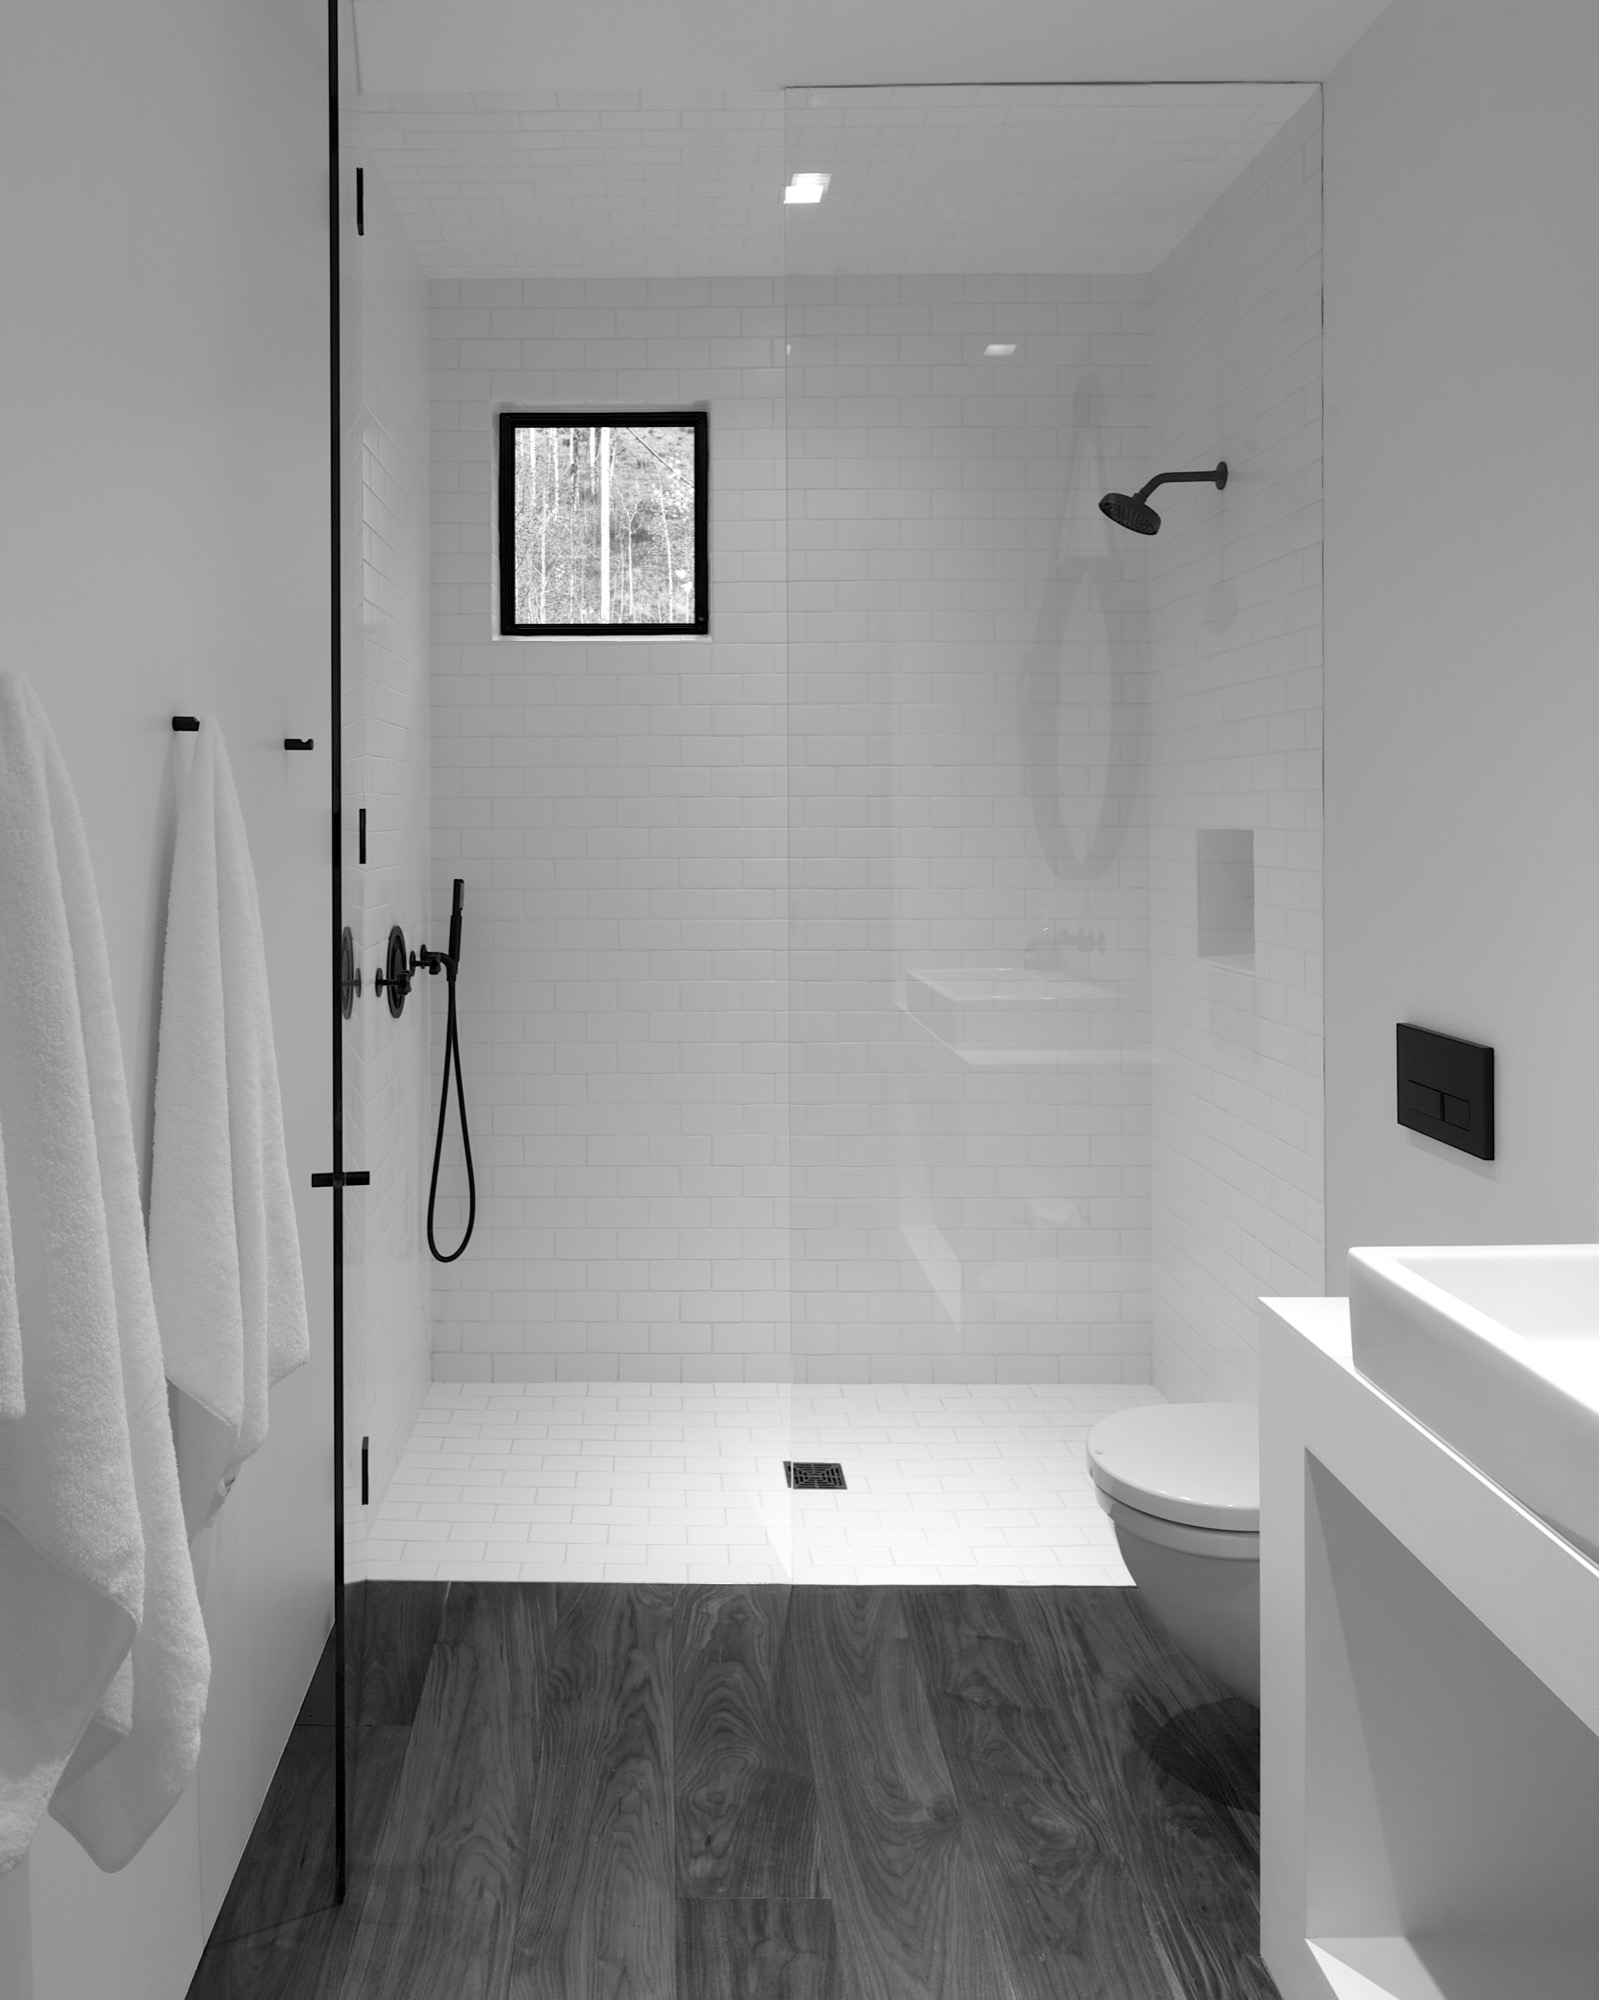 The minimalistic bathroom at the center of the studio separates the sleeping area from the living area / Photo by Greg Watts